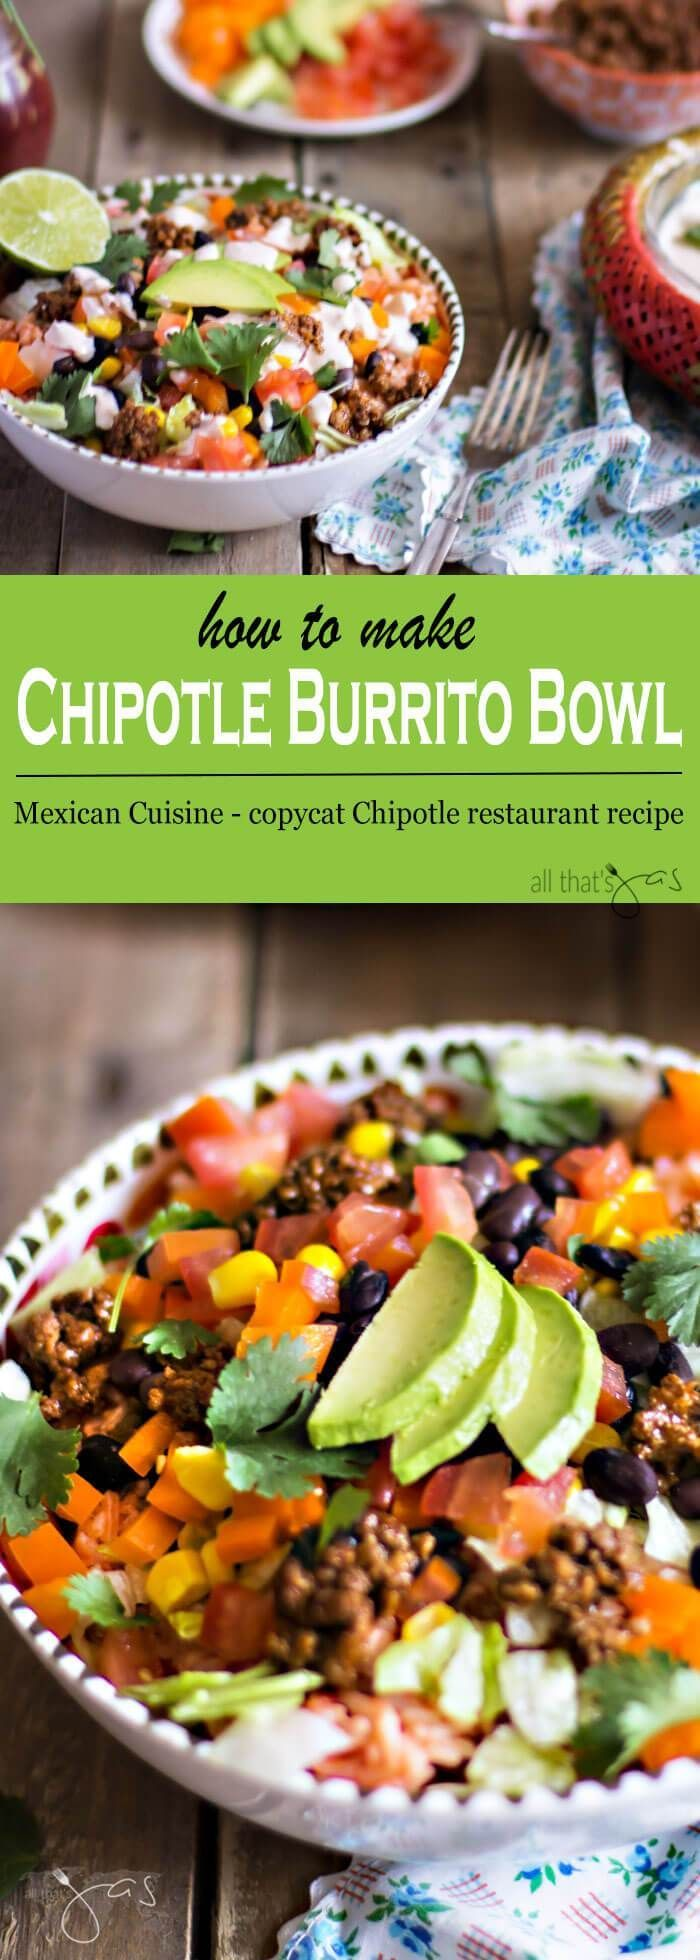 This easy and delicious copycat Mexican Chipotle burrito bowl recipe is a real crowd-pleaser.